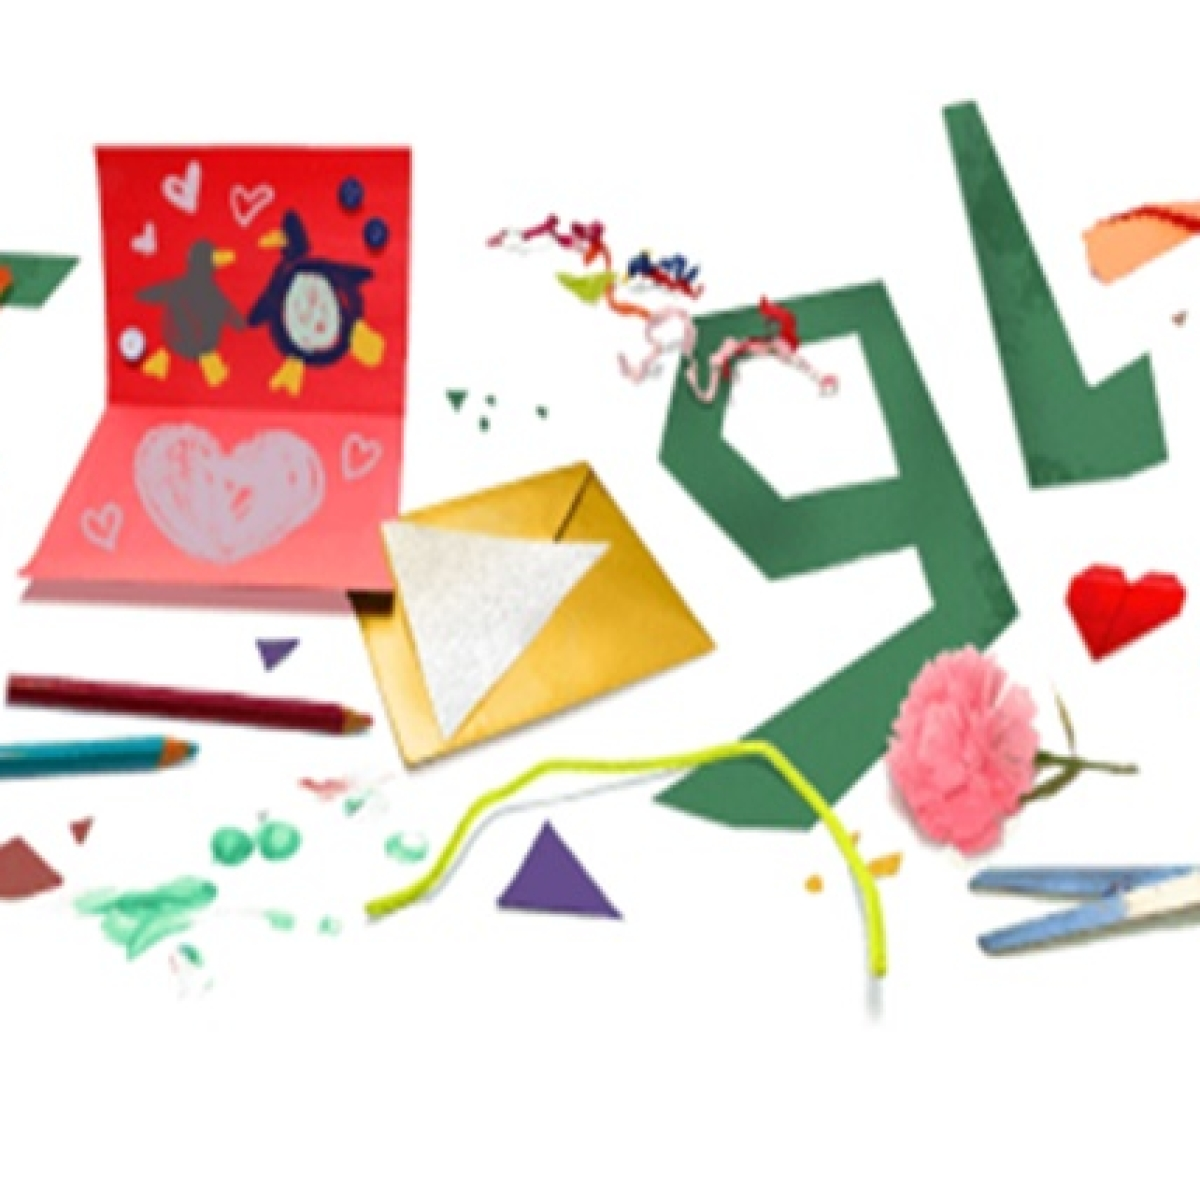 Father's Day 2020: Google lets you make doodle e-cards for sending wishes to your dad